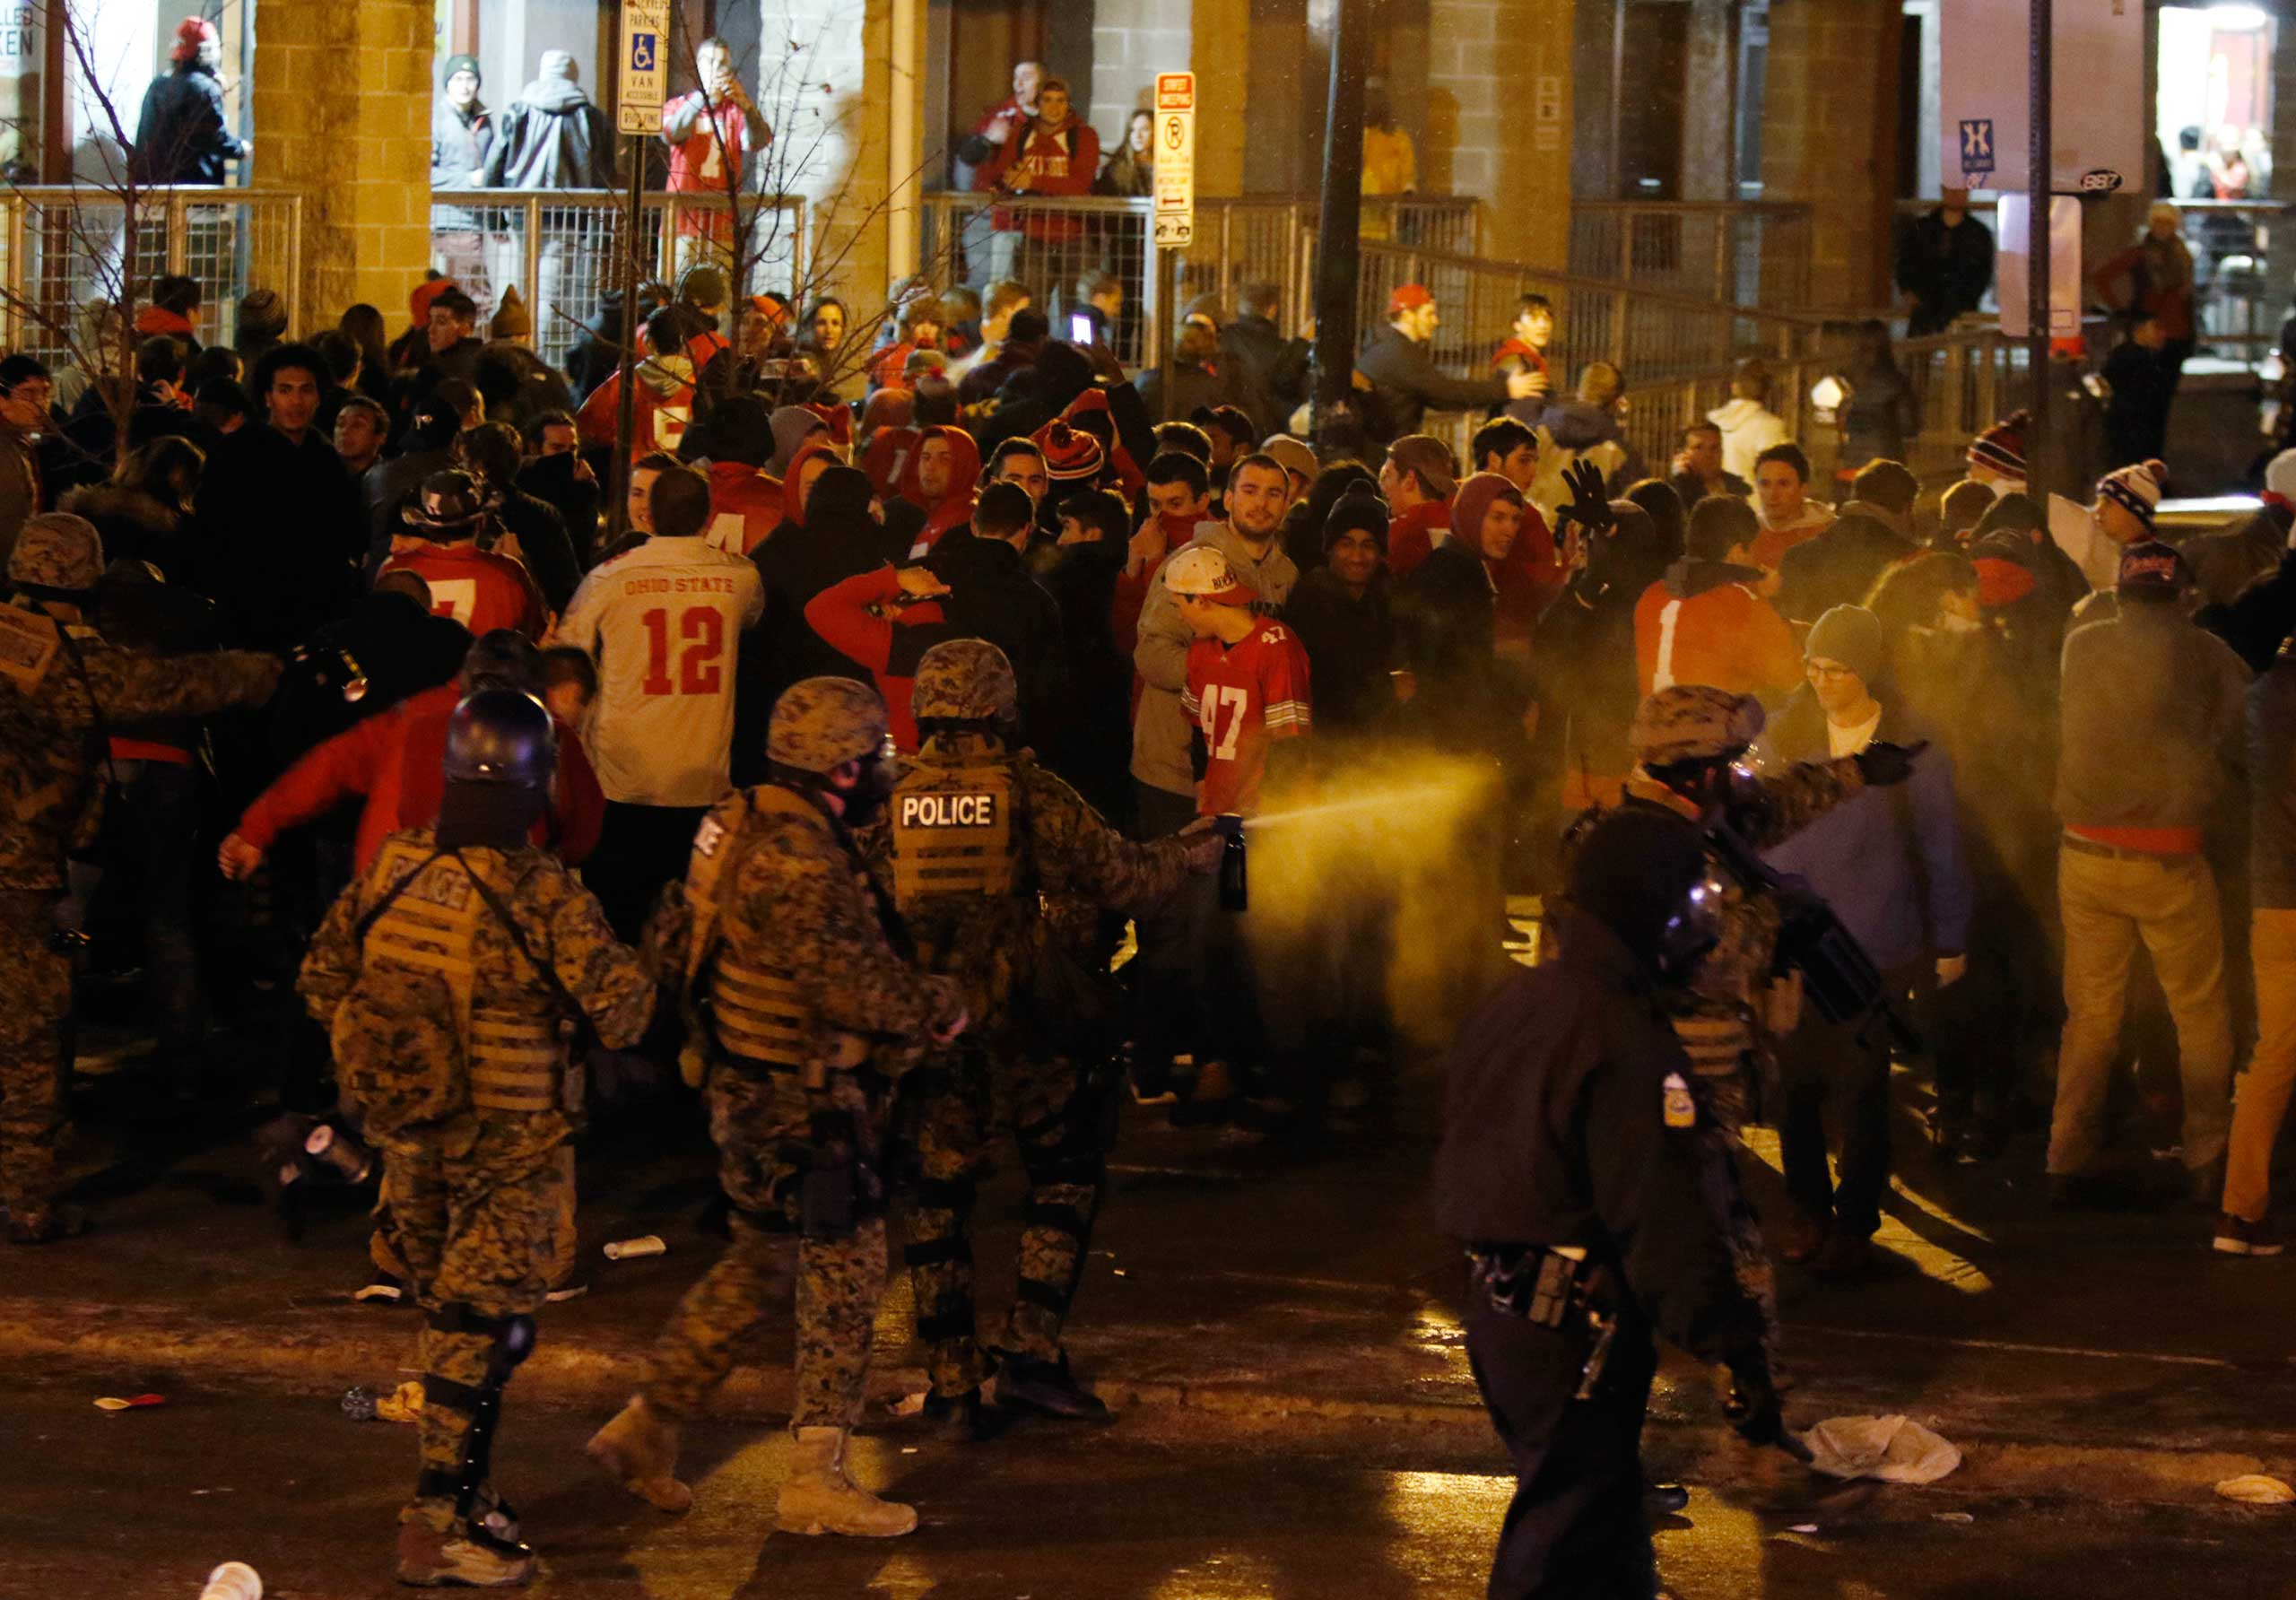 Police officers try to disperse the crowd of Ohio State fans trying to block High Street in Columbus, Ohio, as they celebrate the Buckeye's 42-20 win over Oregon following the National Championship football game between Ohio State and Oregon, Jan. 12, 2015.